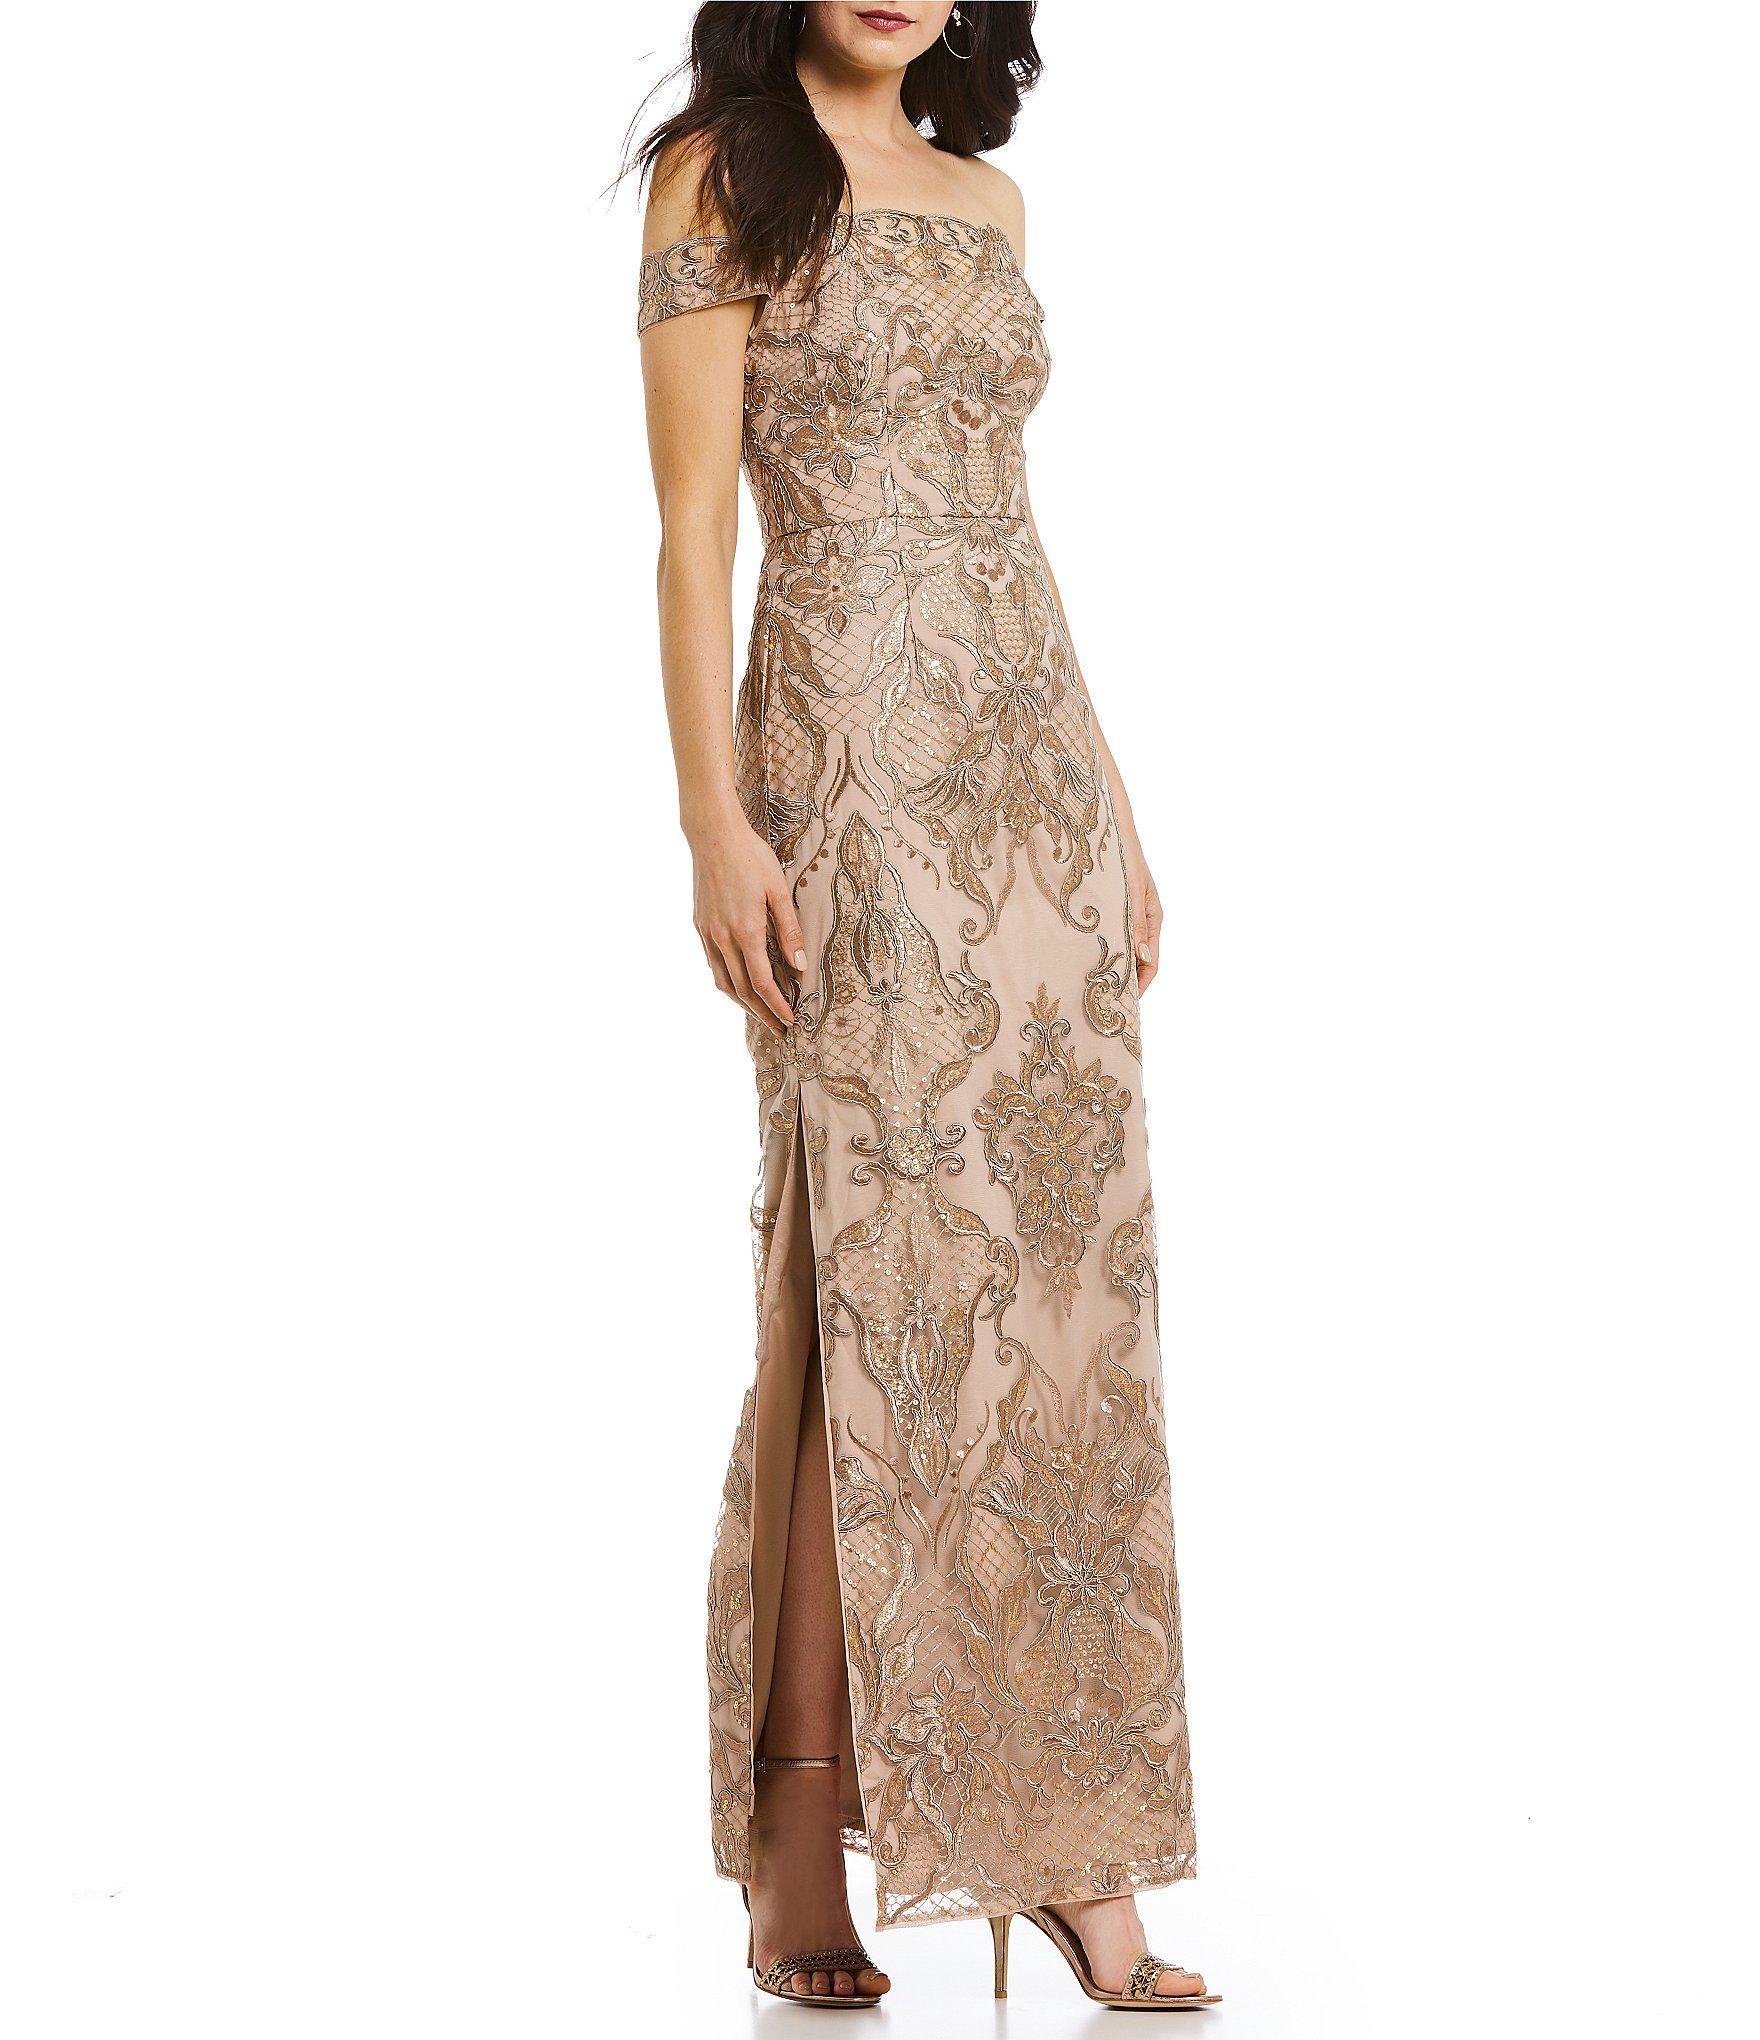 107a7741d7c Shop for Aidan Mattox Off-the-Shoulder Side Slit Lace Gown at Dillards.com.  Visit Dillards.com to find clothing, accessories, shoes, cosmetics & more.